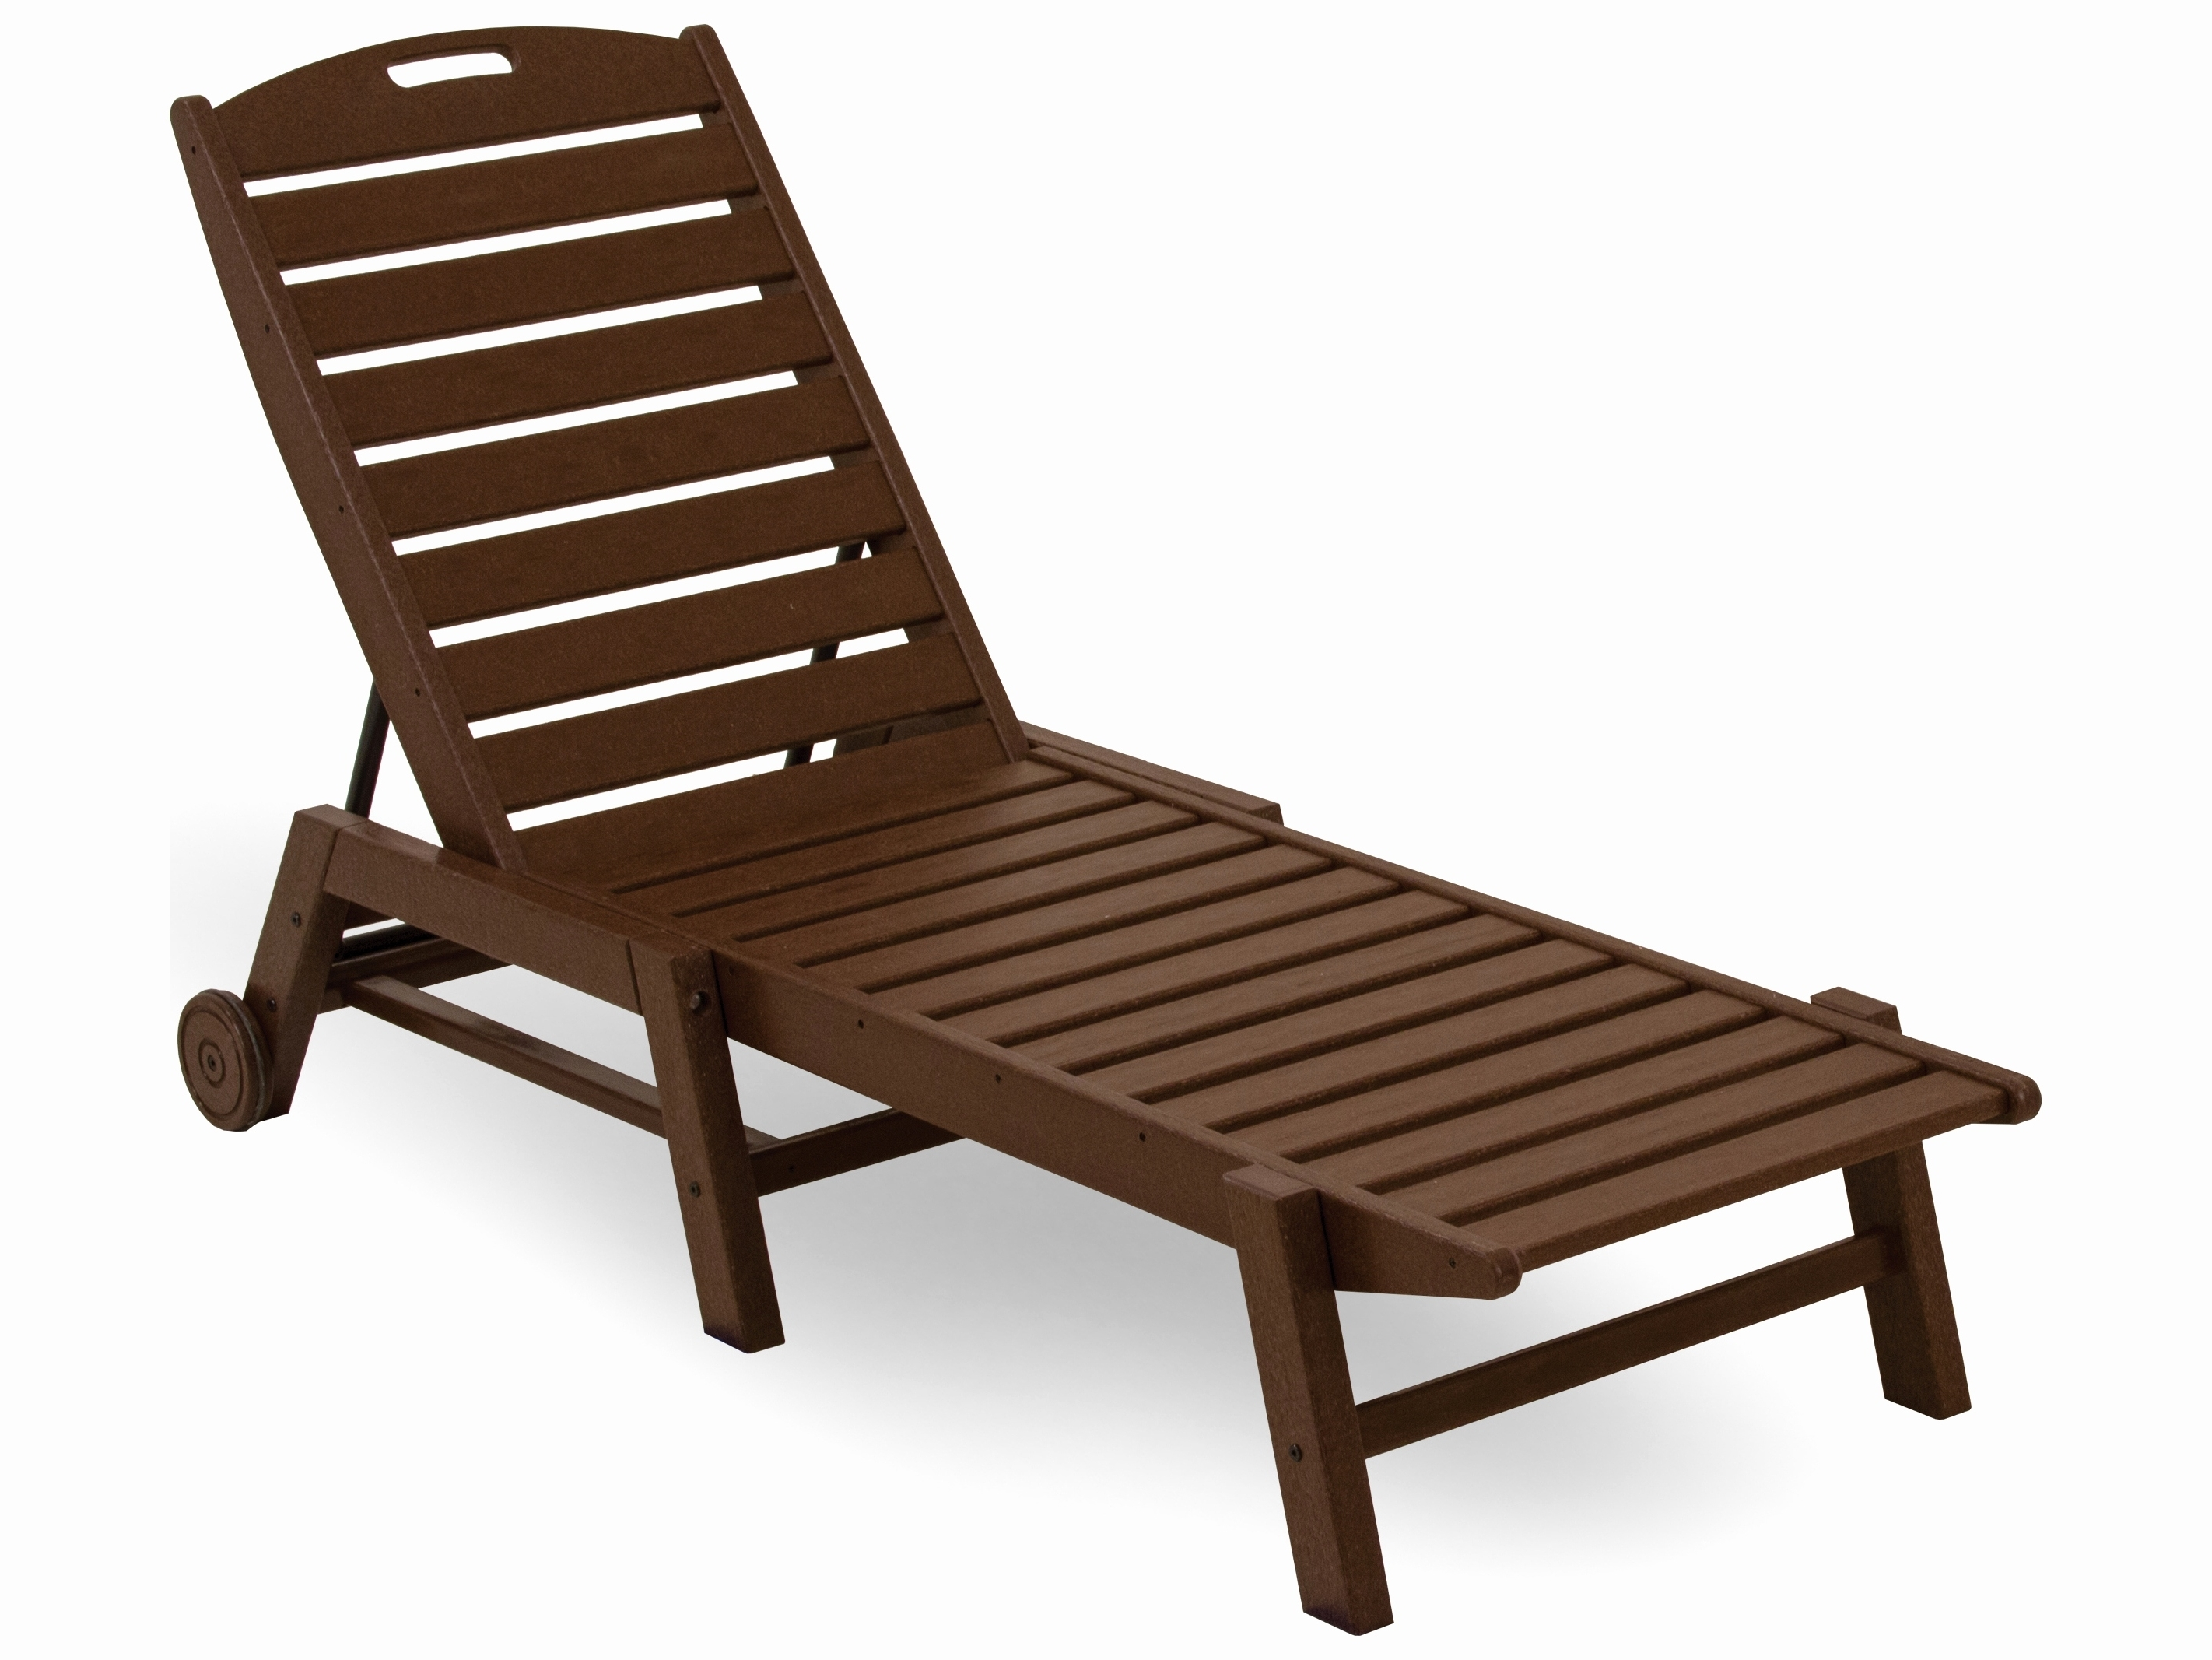 Explore Gallery Of Pvc Outdoor Chaise Lounge Chairs Showing 11. White  Plastic Patio Chairs Popular Outdoor ...